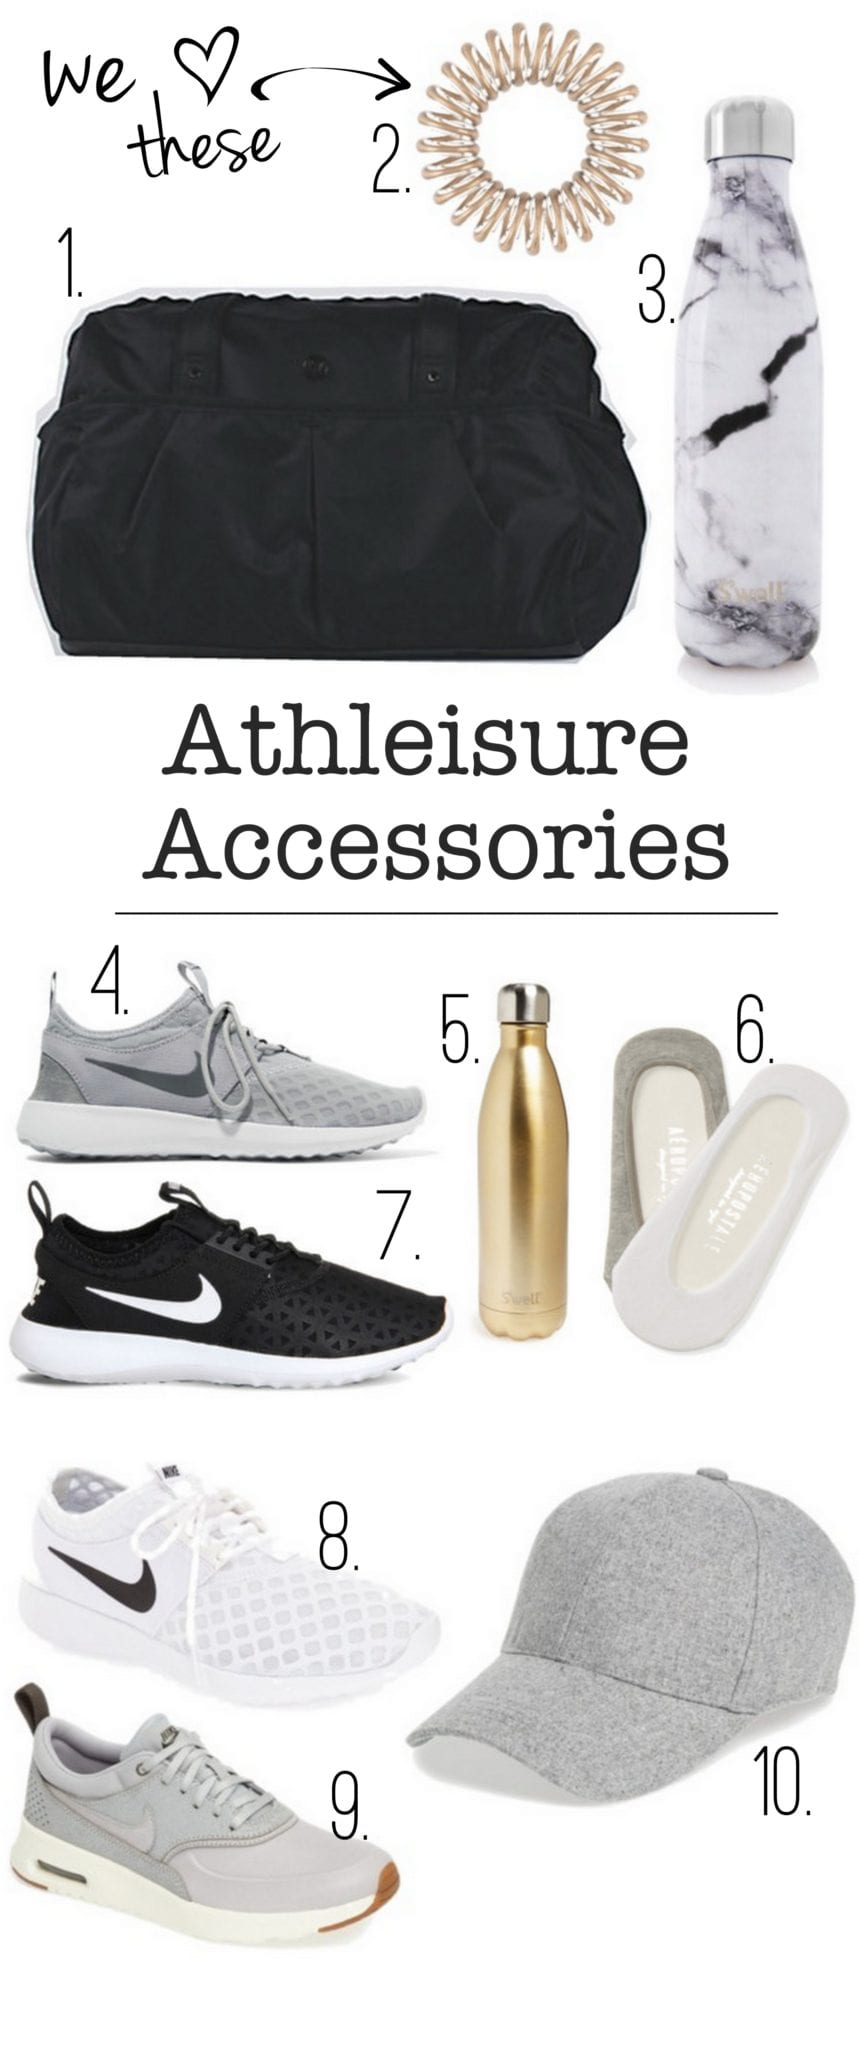 Accessories list: Workout Accessories & Fitness Goals for 2017 | DIY Playbook